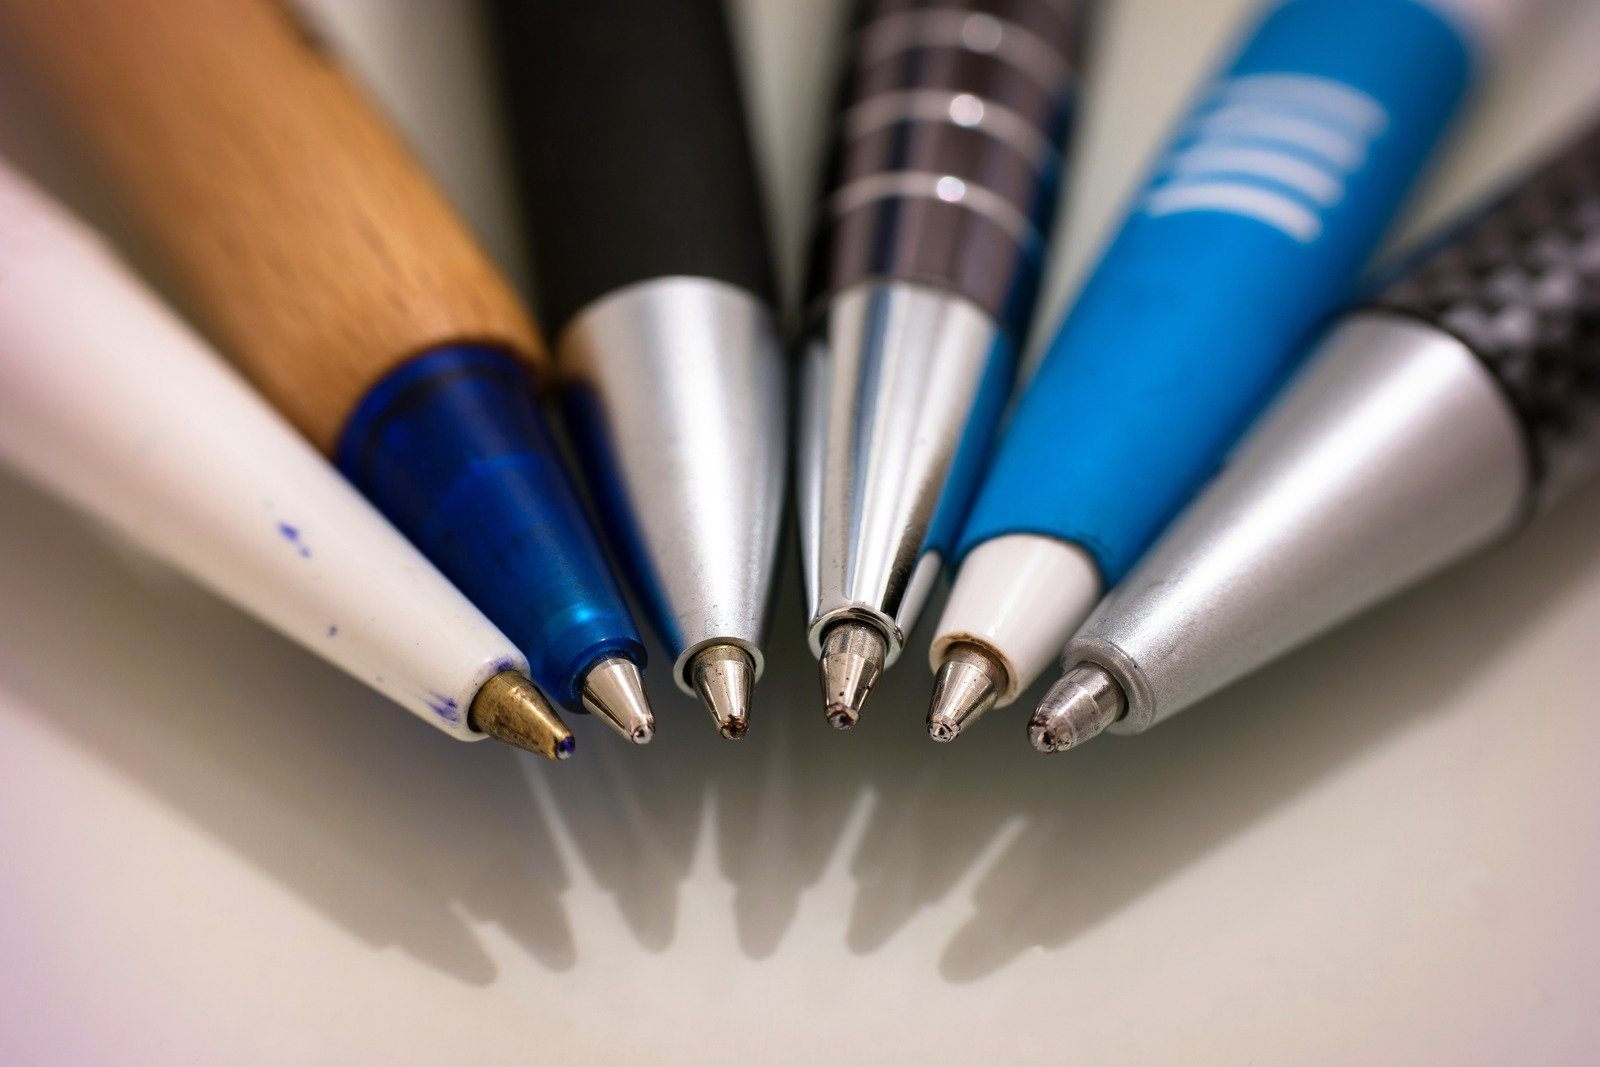 effective note taking tips - before class - prepare pens - tutor2you